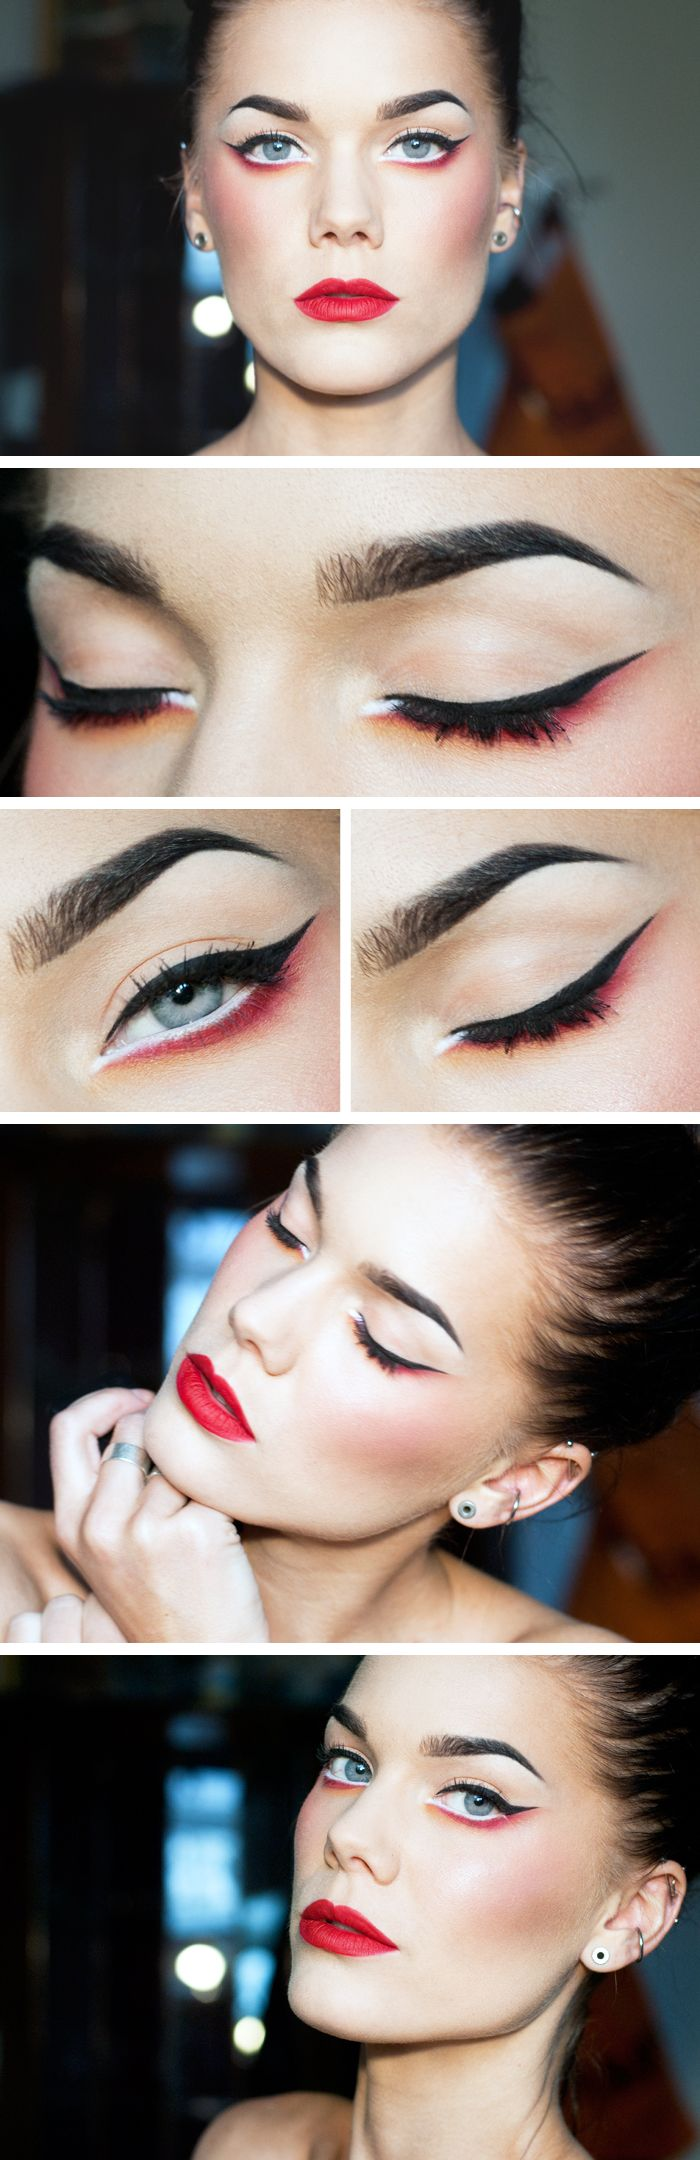 "Today's Look: :The Modern Geisha"" -Linda Hallberg (red!)04/07/13"